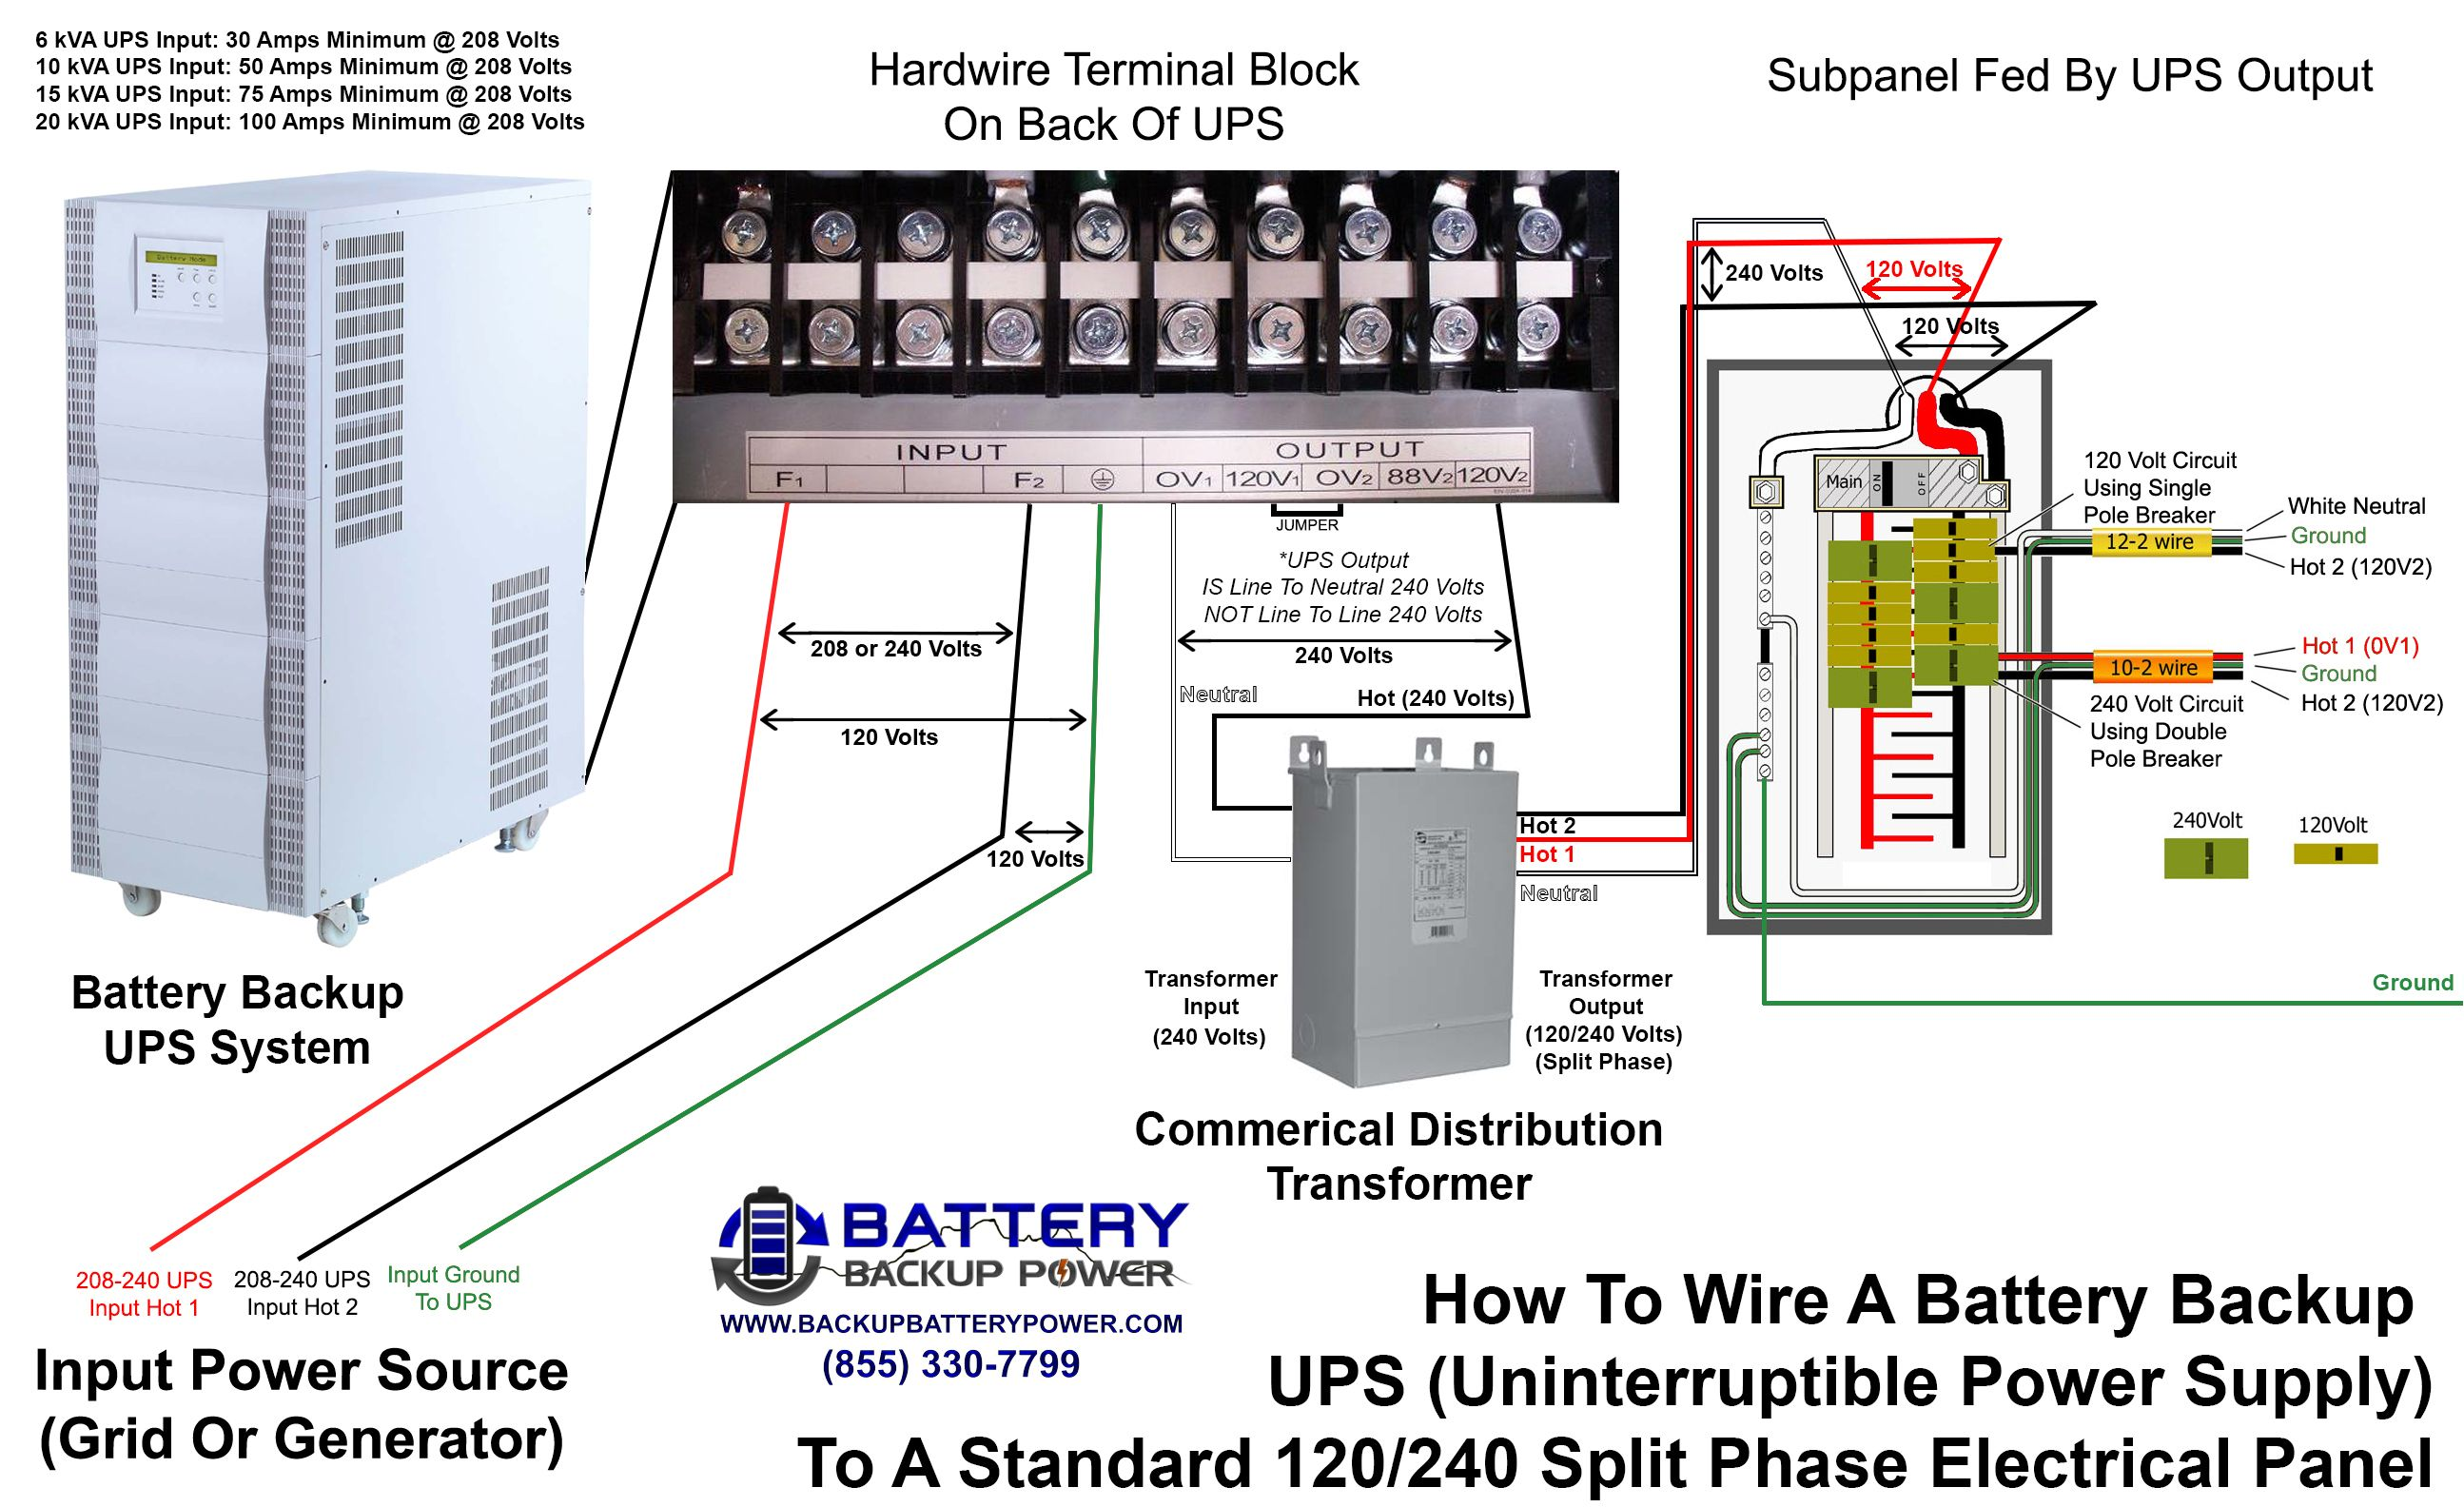 120 208 volt wiring diagram wiring diagram name wiring diagram for a square d 75 kva transformers review ebooks [ 2590 x 1584 Pixel ]